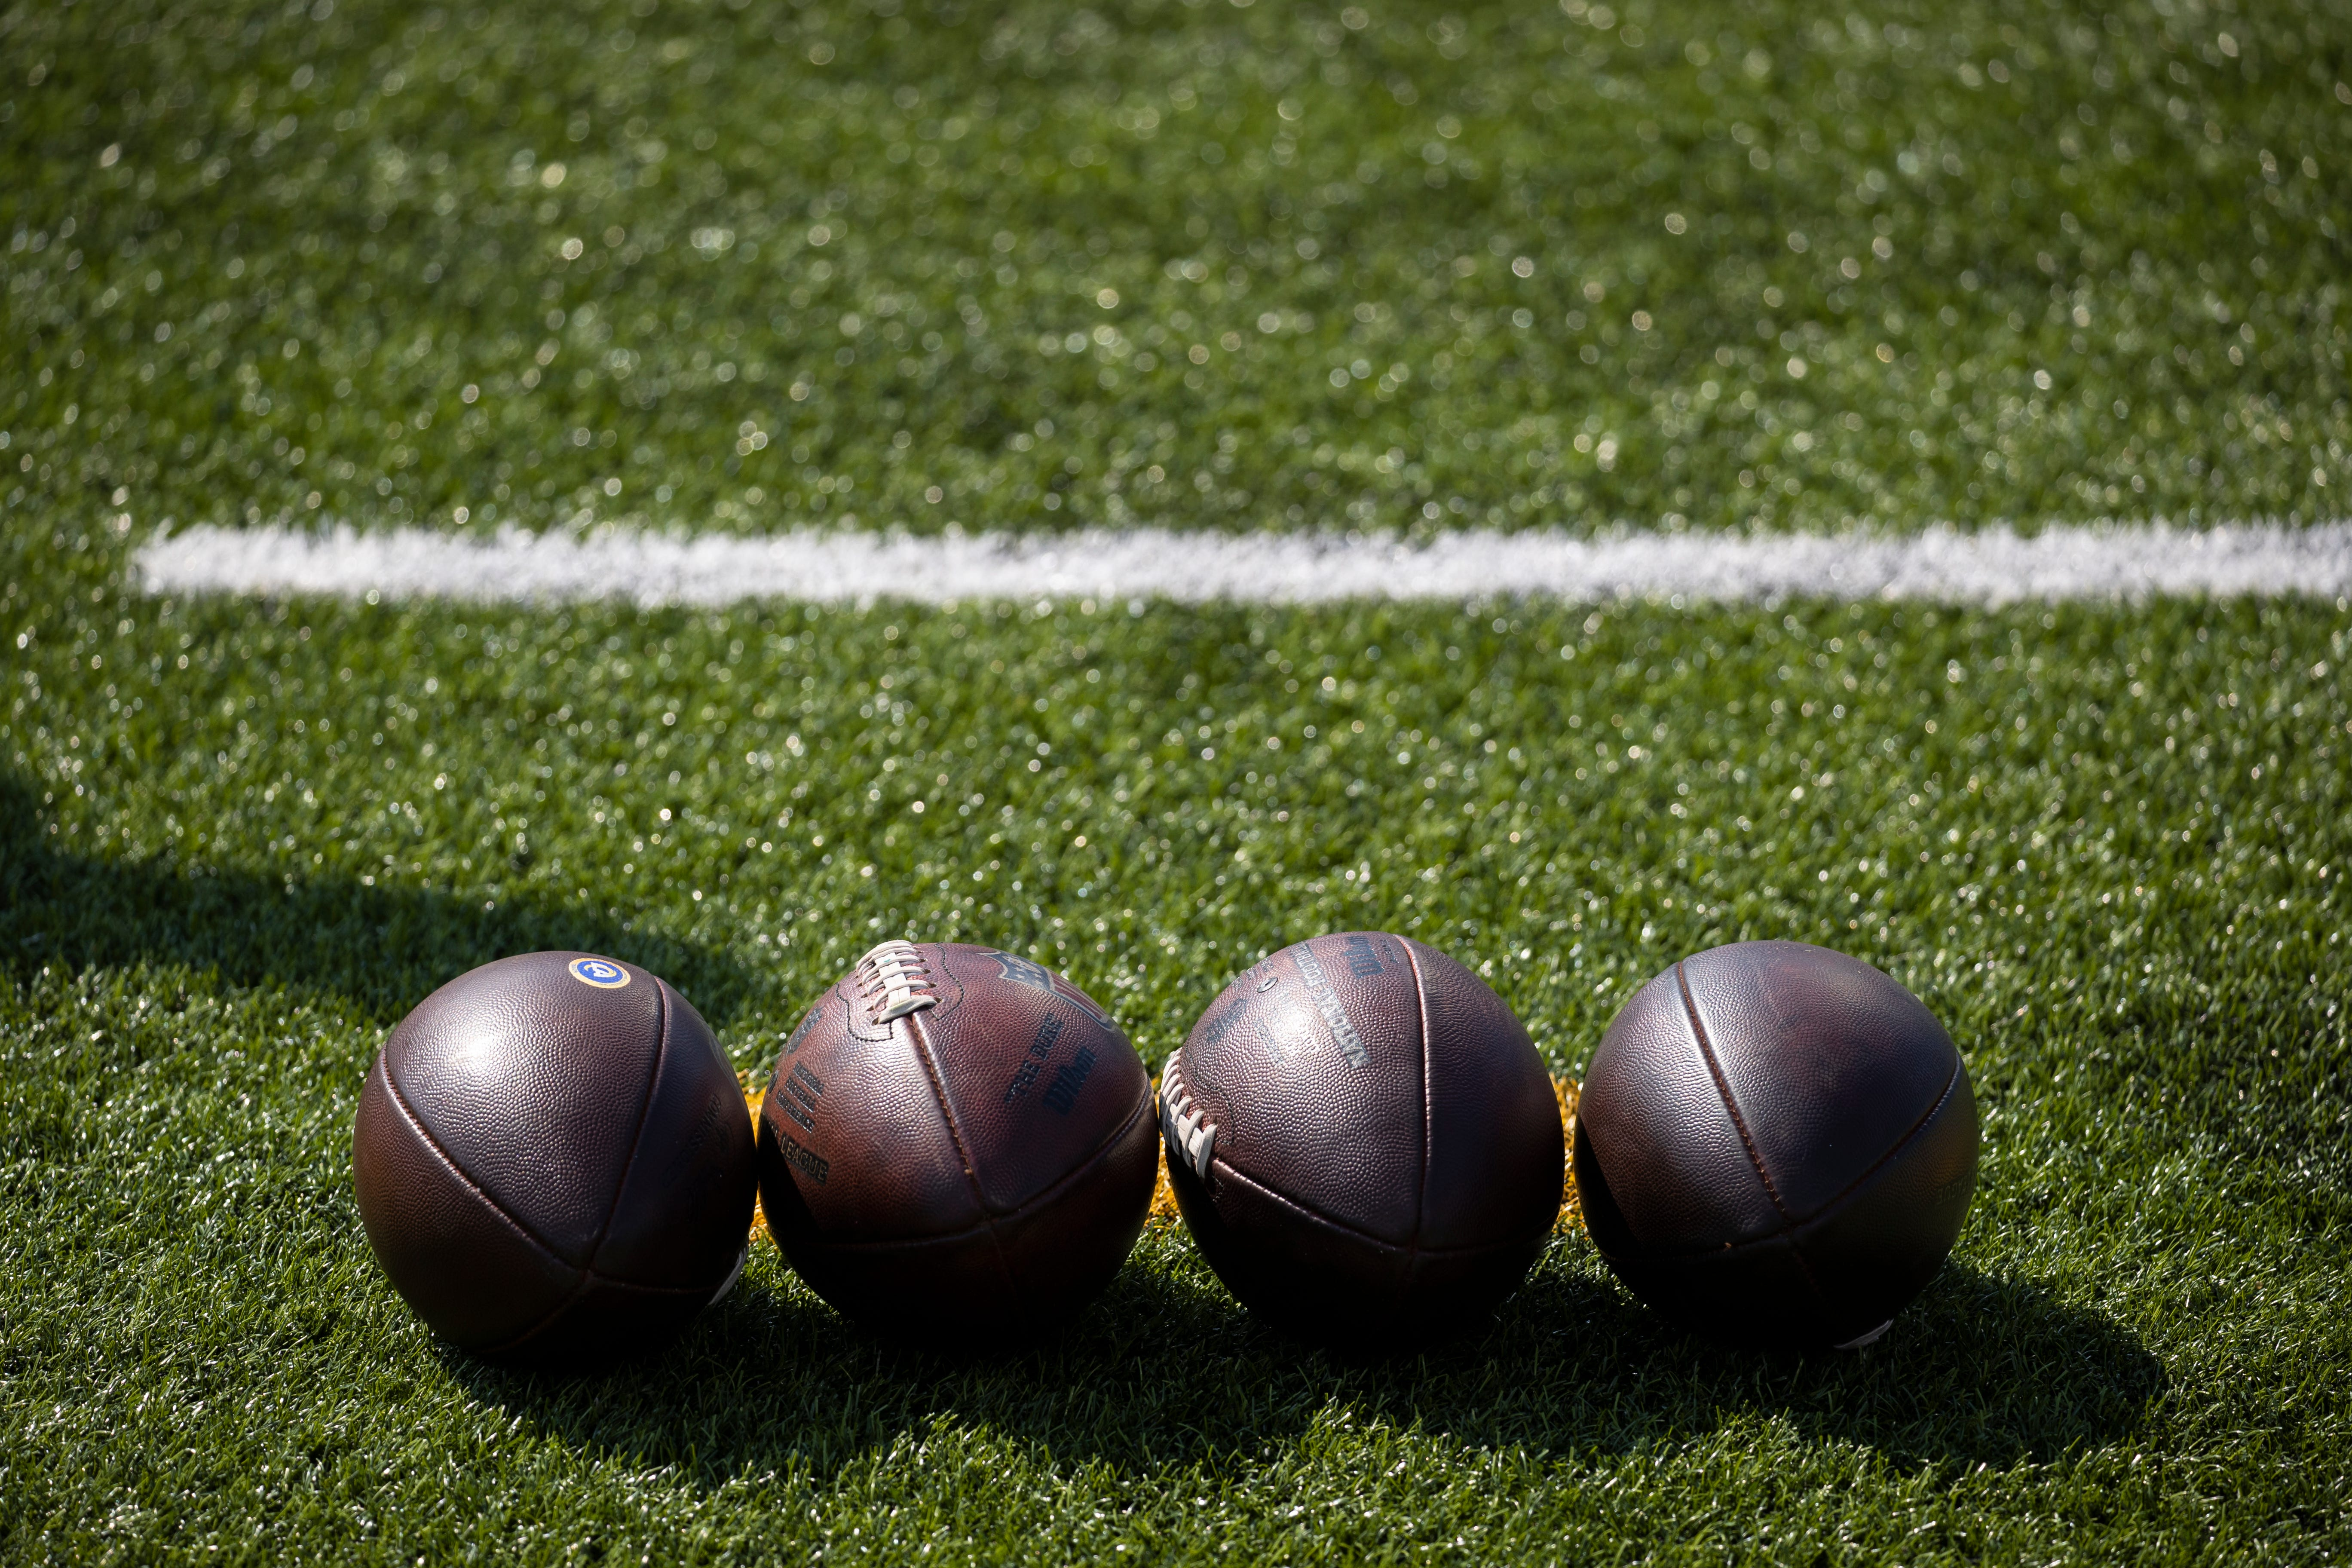 Texas high school football coach resigns following investigation of racially insensitive comments